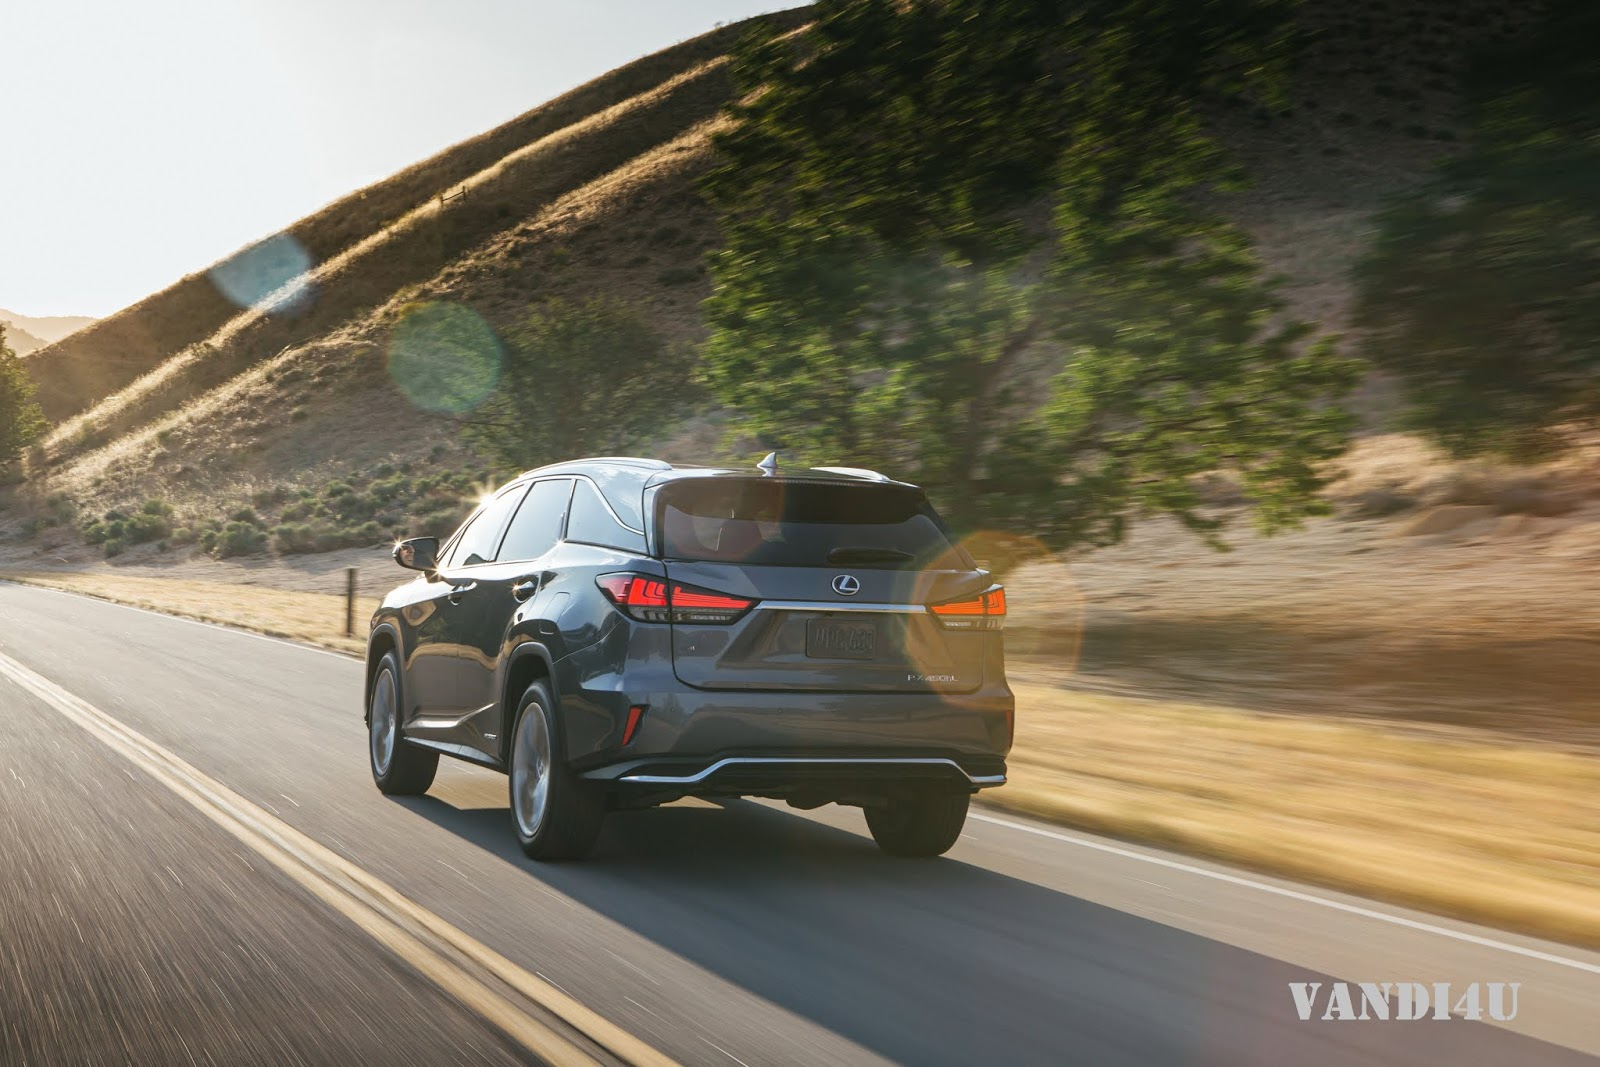 Lexus RX 450hL launched in India: Top 5 things to know | VANDI4U